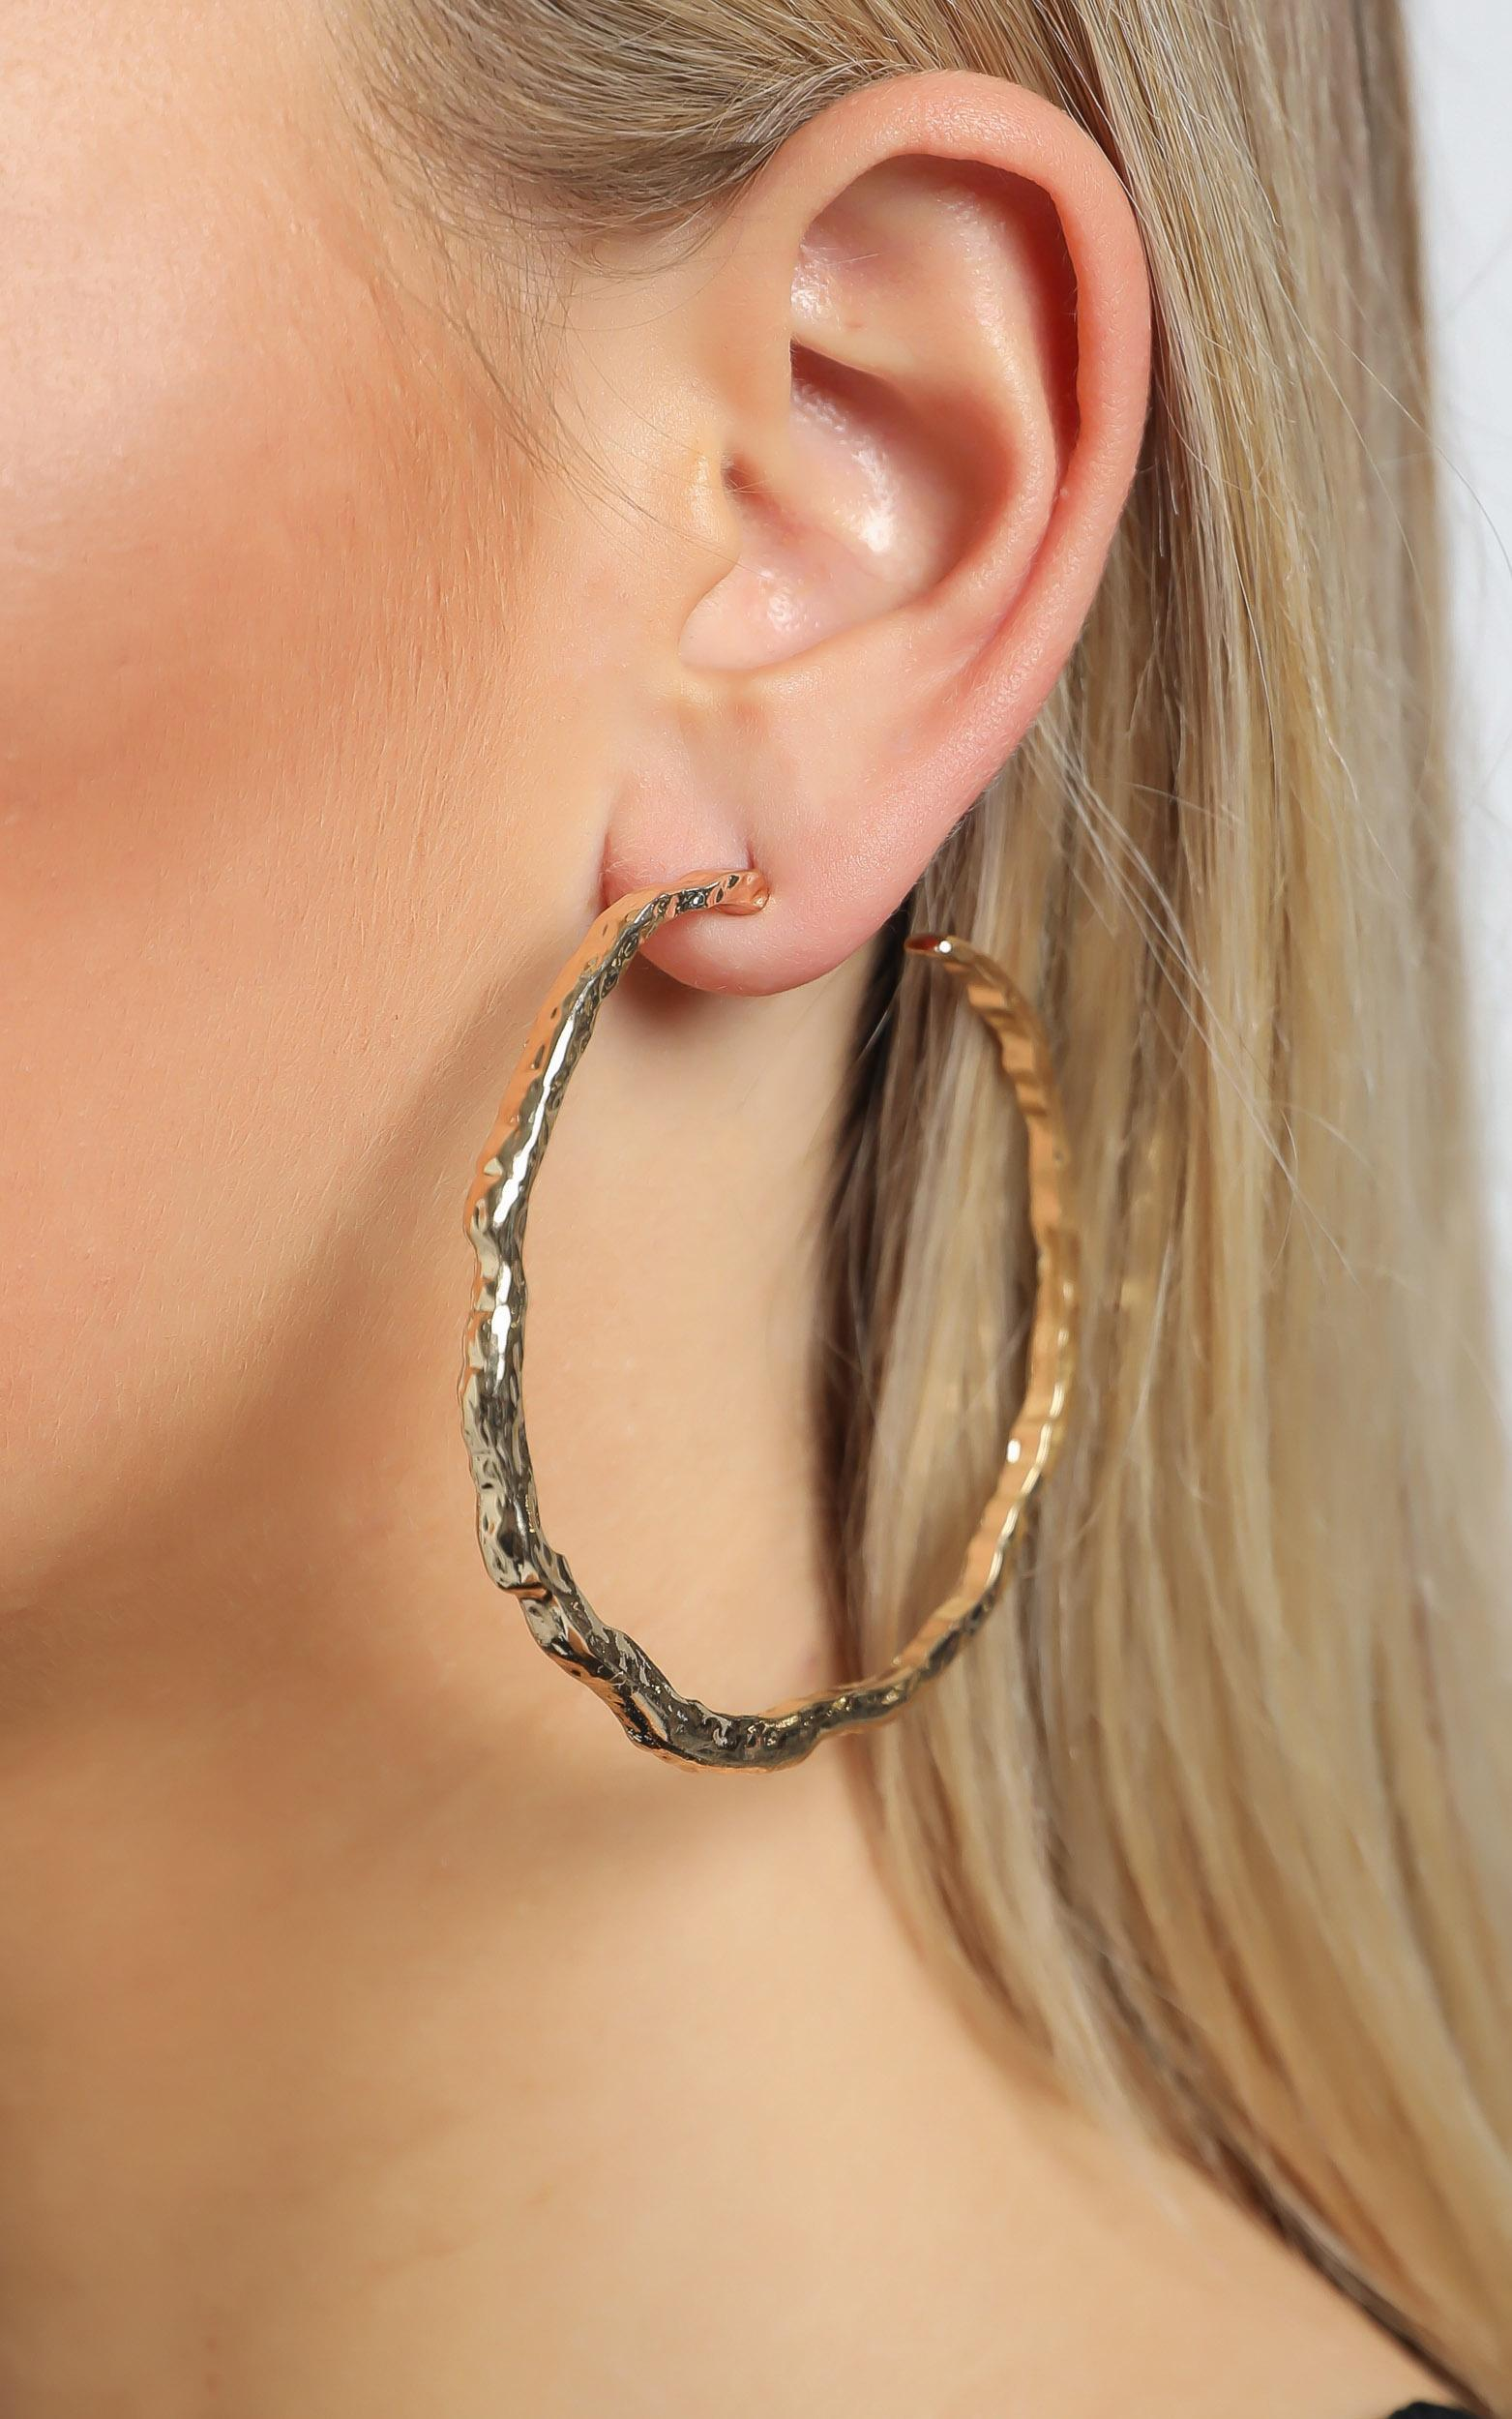 Maybelle Earrings in Gold, , hi-res image number null